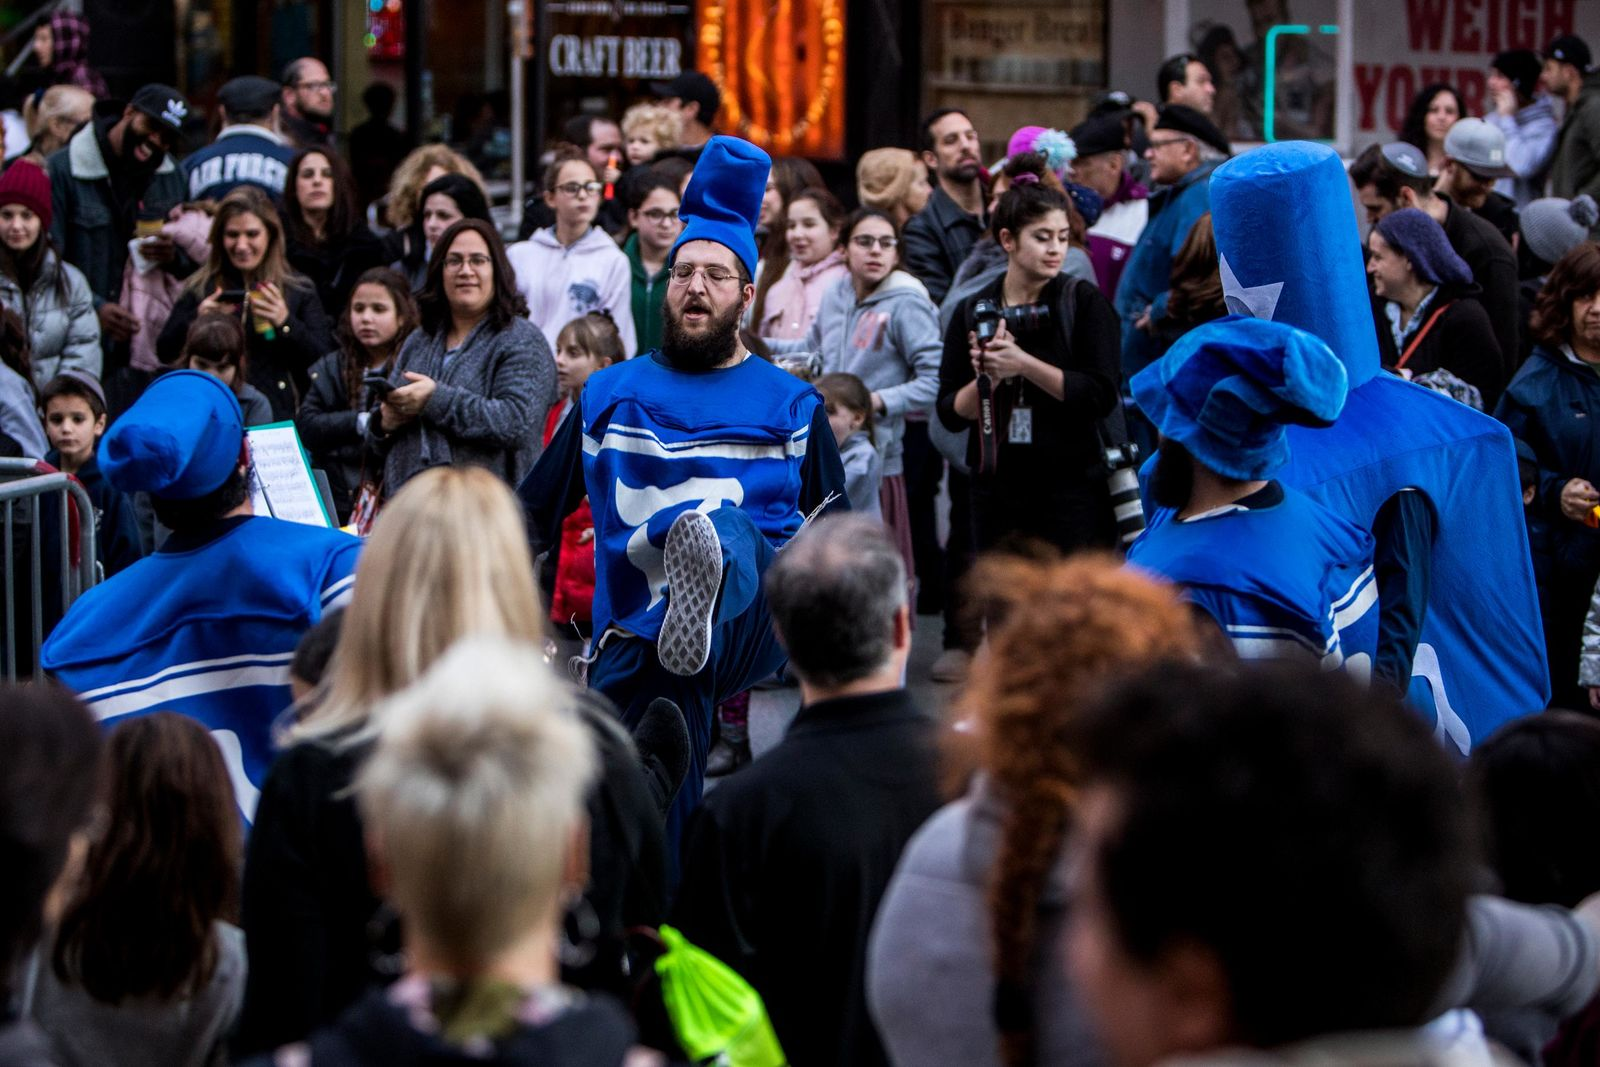 Shlomo Sirota and the dancing menorahs pump up the crowd before the start of the Grand Menorah lighting Sunday, Dec. 2 on Fremont Street. The Grand Menorah will remain on display throughout the Hanukkah season. CREDIT: Joe Buglewicz/Las Vegas News Bureau